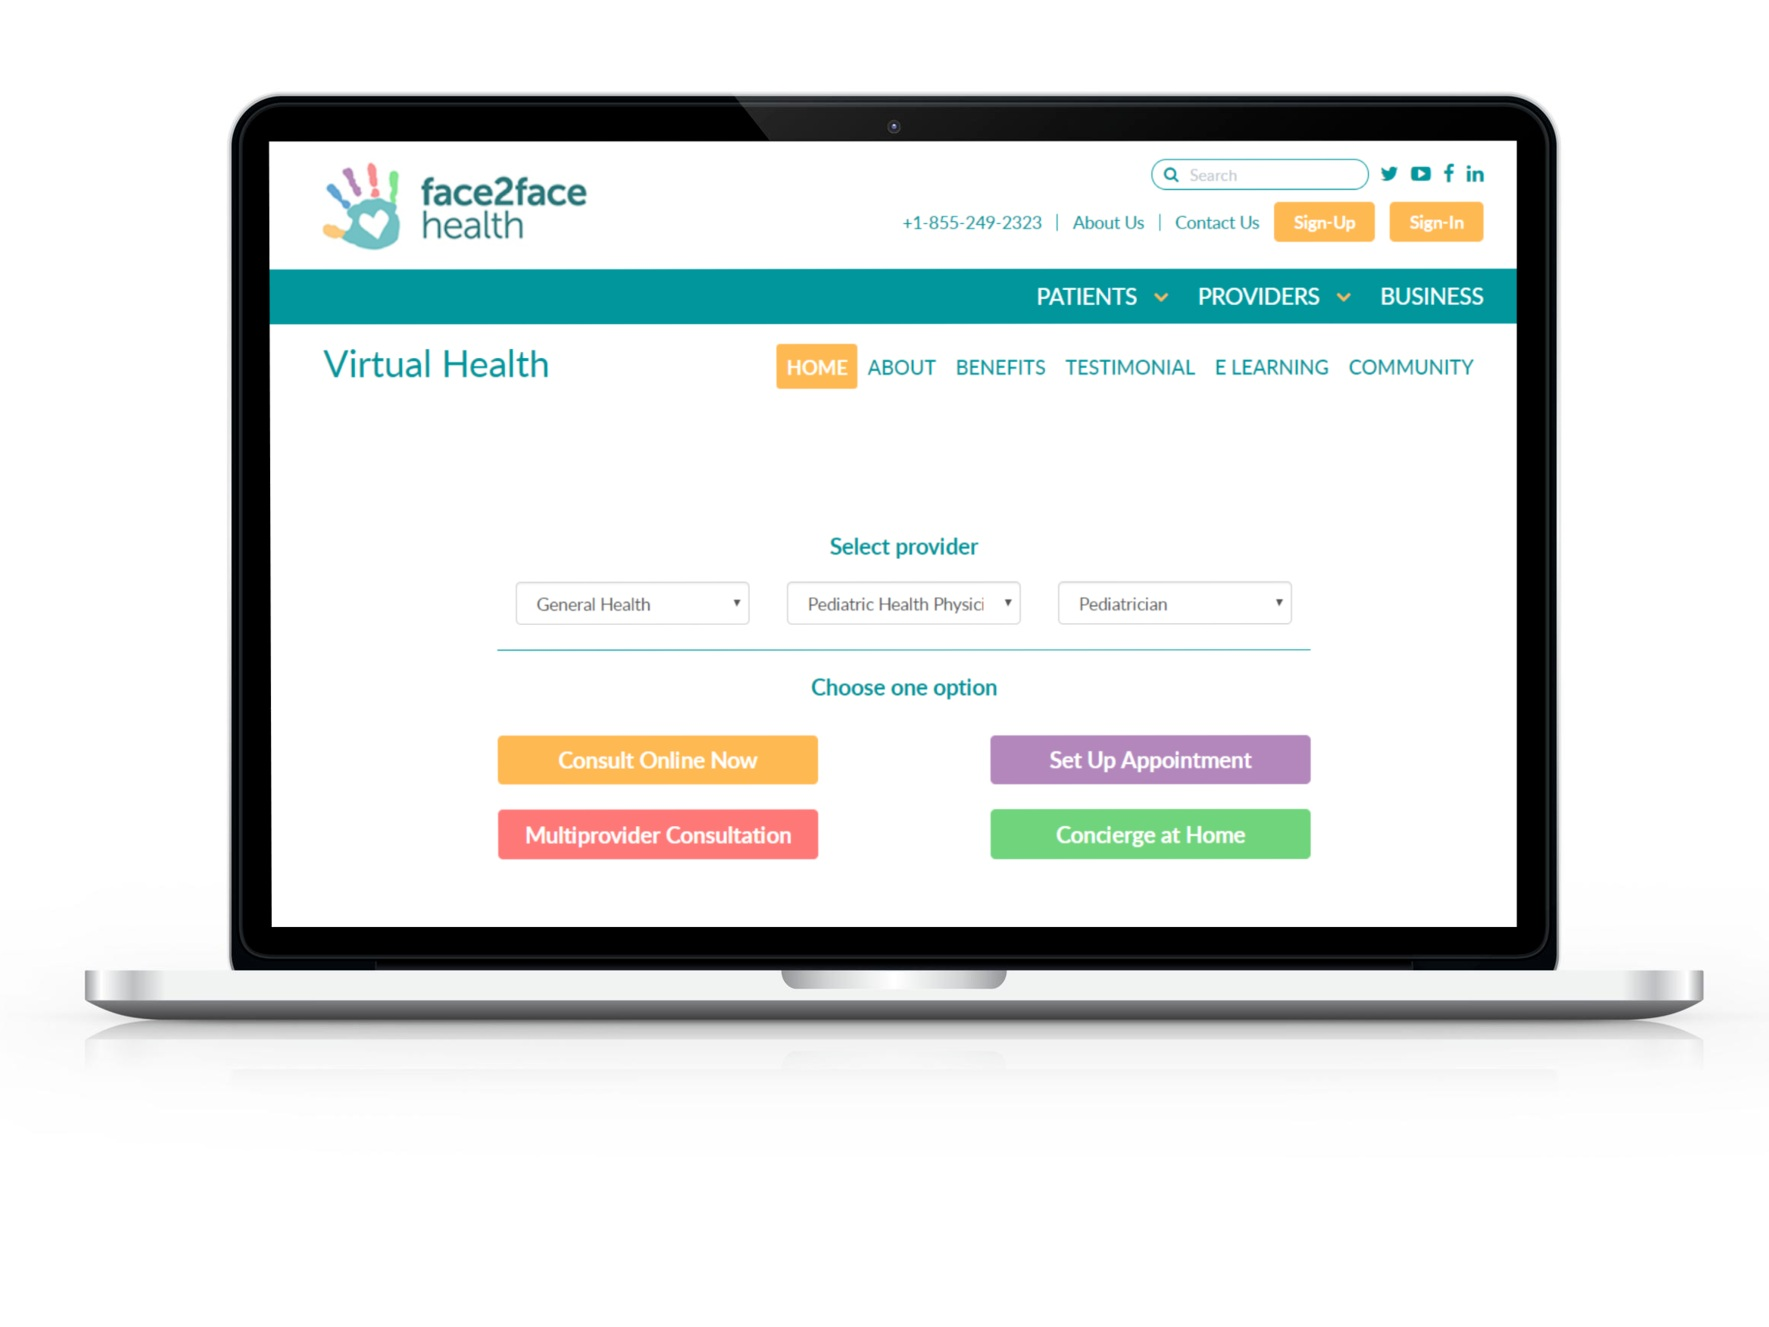 Everything You Need All in One Place - Face2Face Health offers convenient and affordable access to personalized information, tools, care and support you need and trust to better manage your family's health, development and well-being--all in one place.